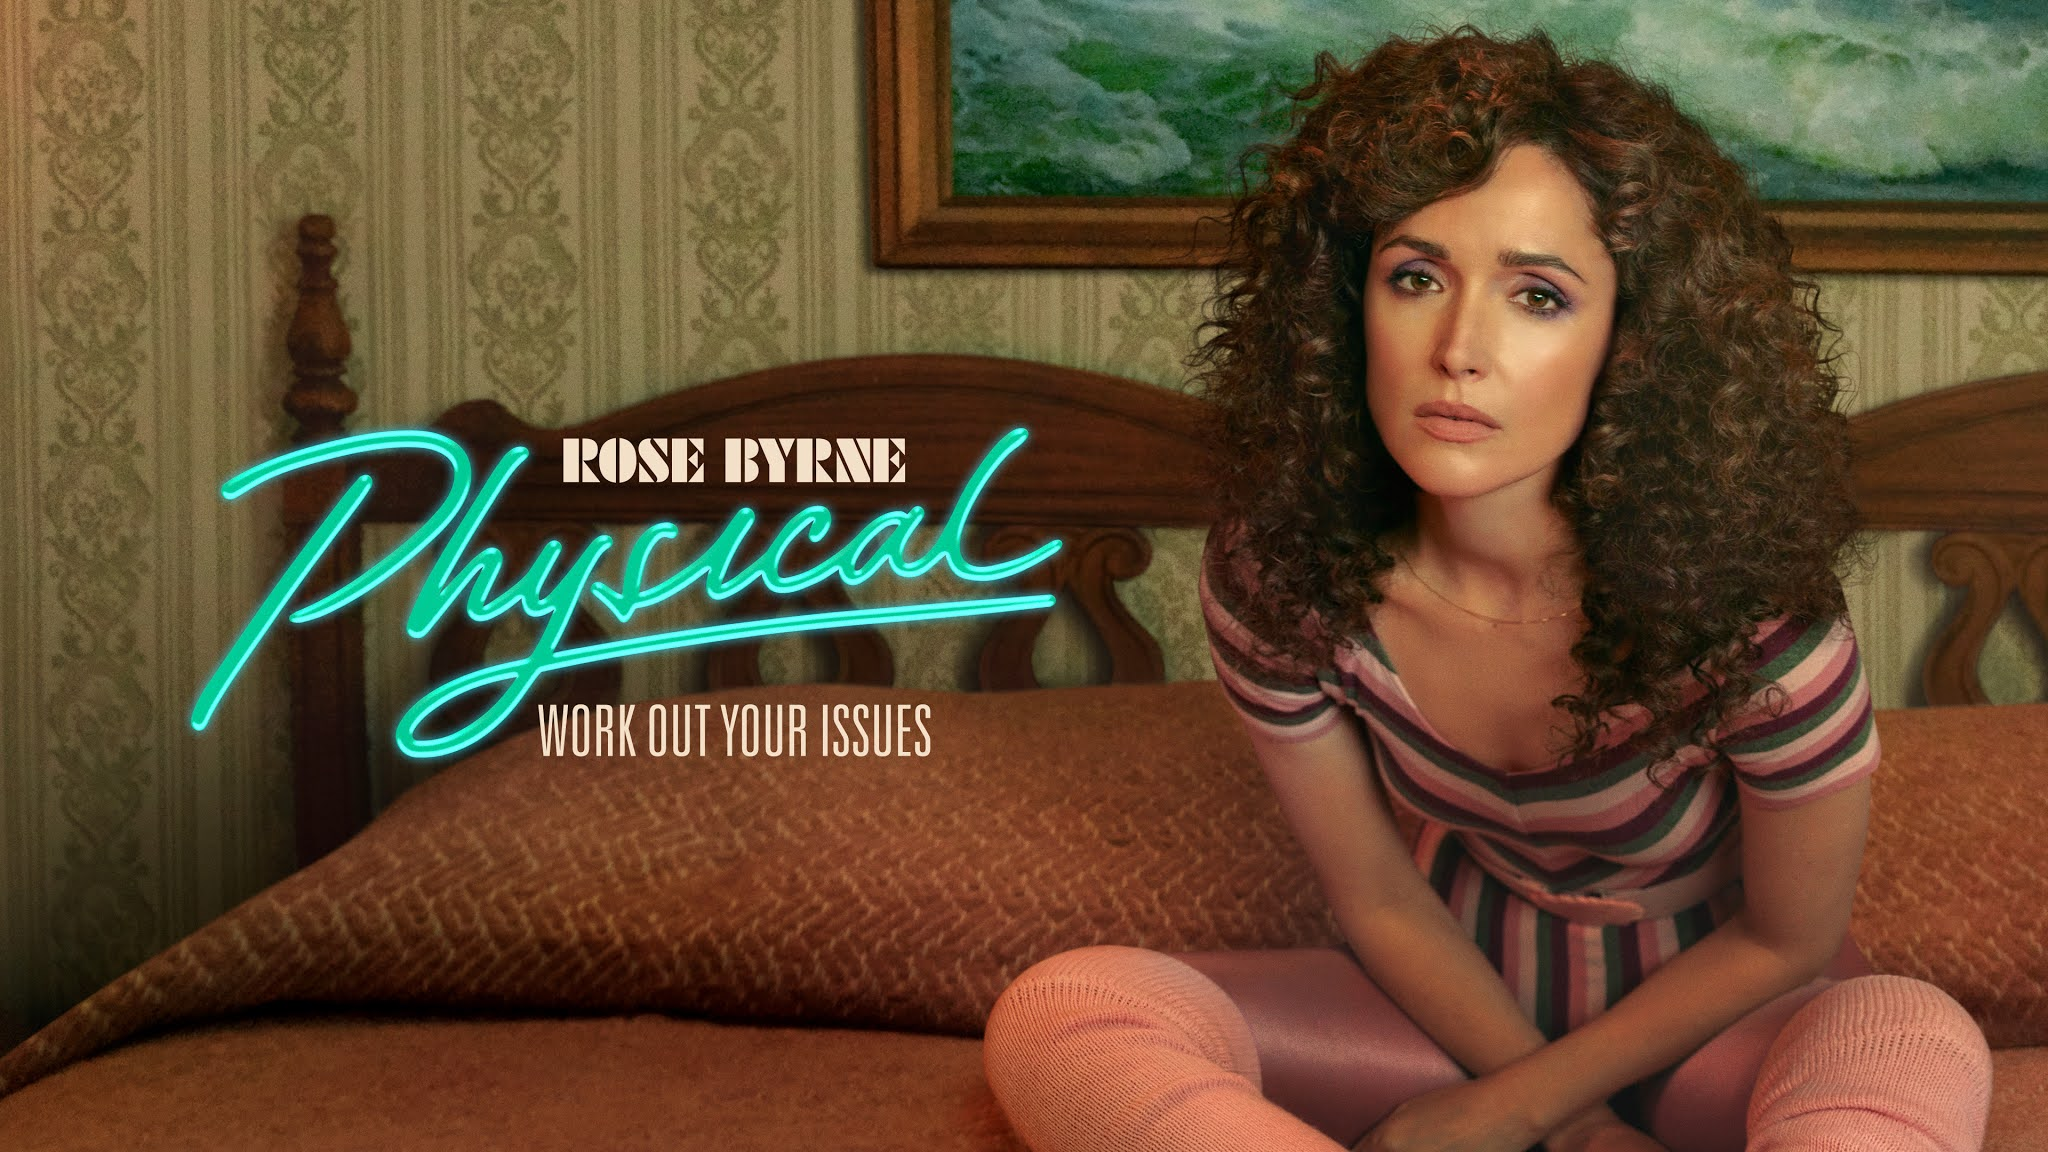 TV review: Physical, on AppleTV+